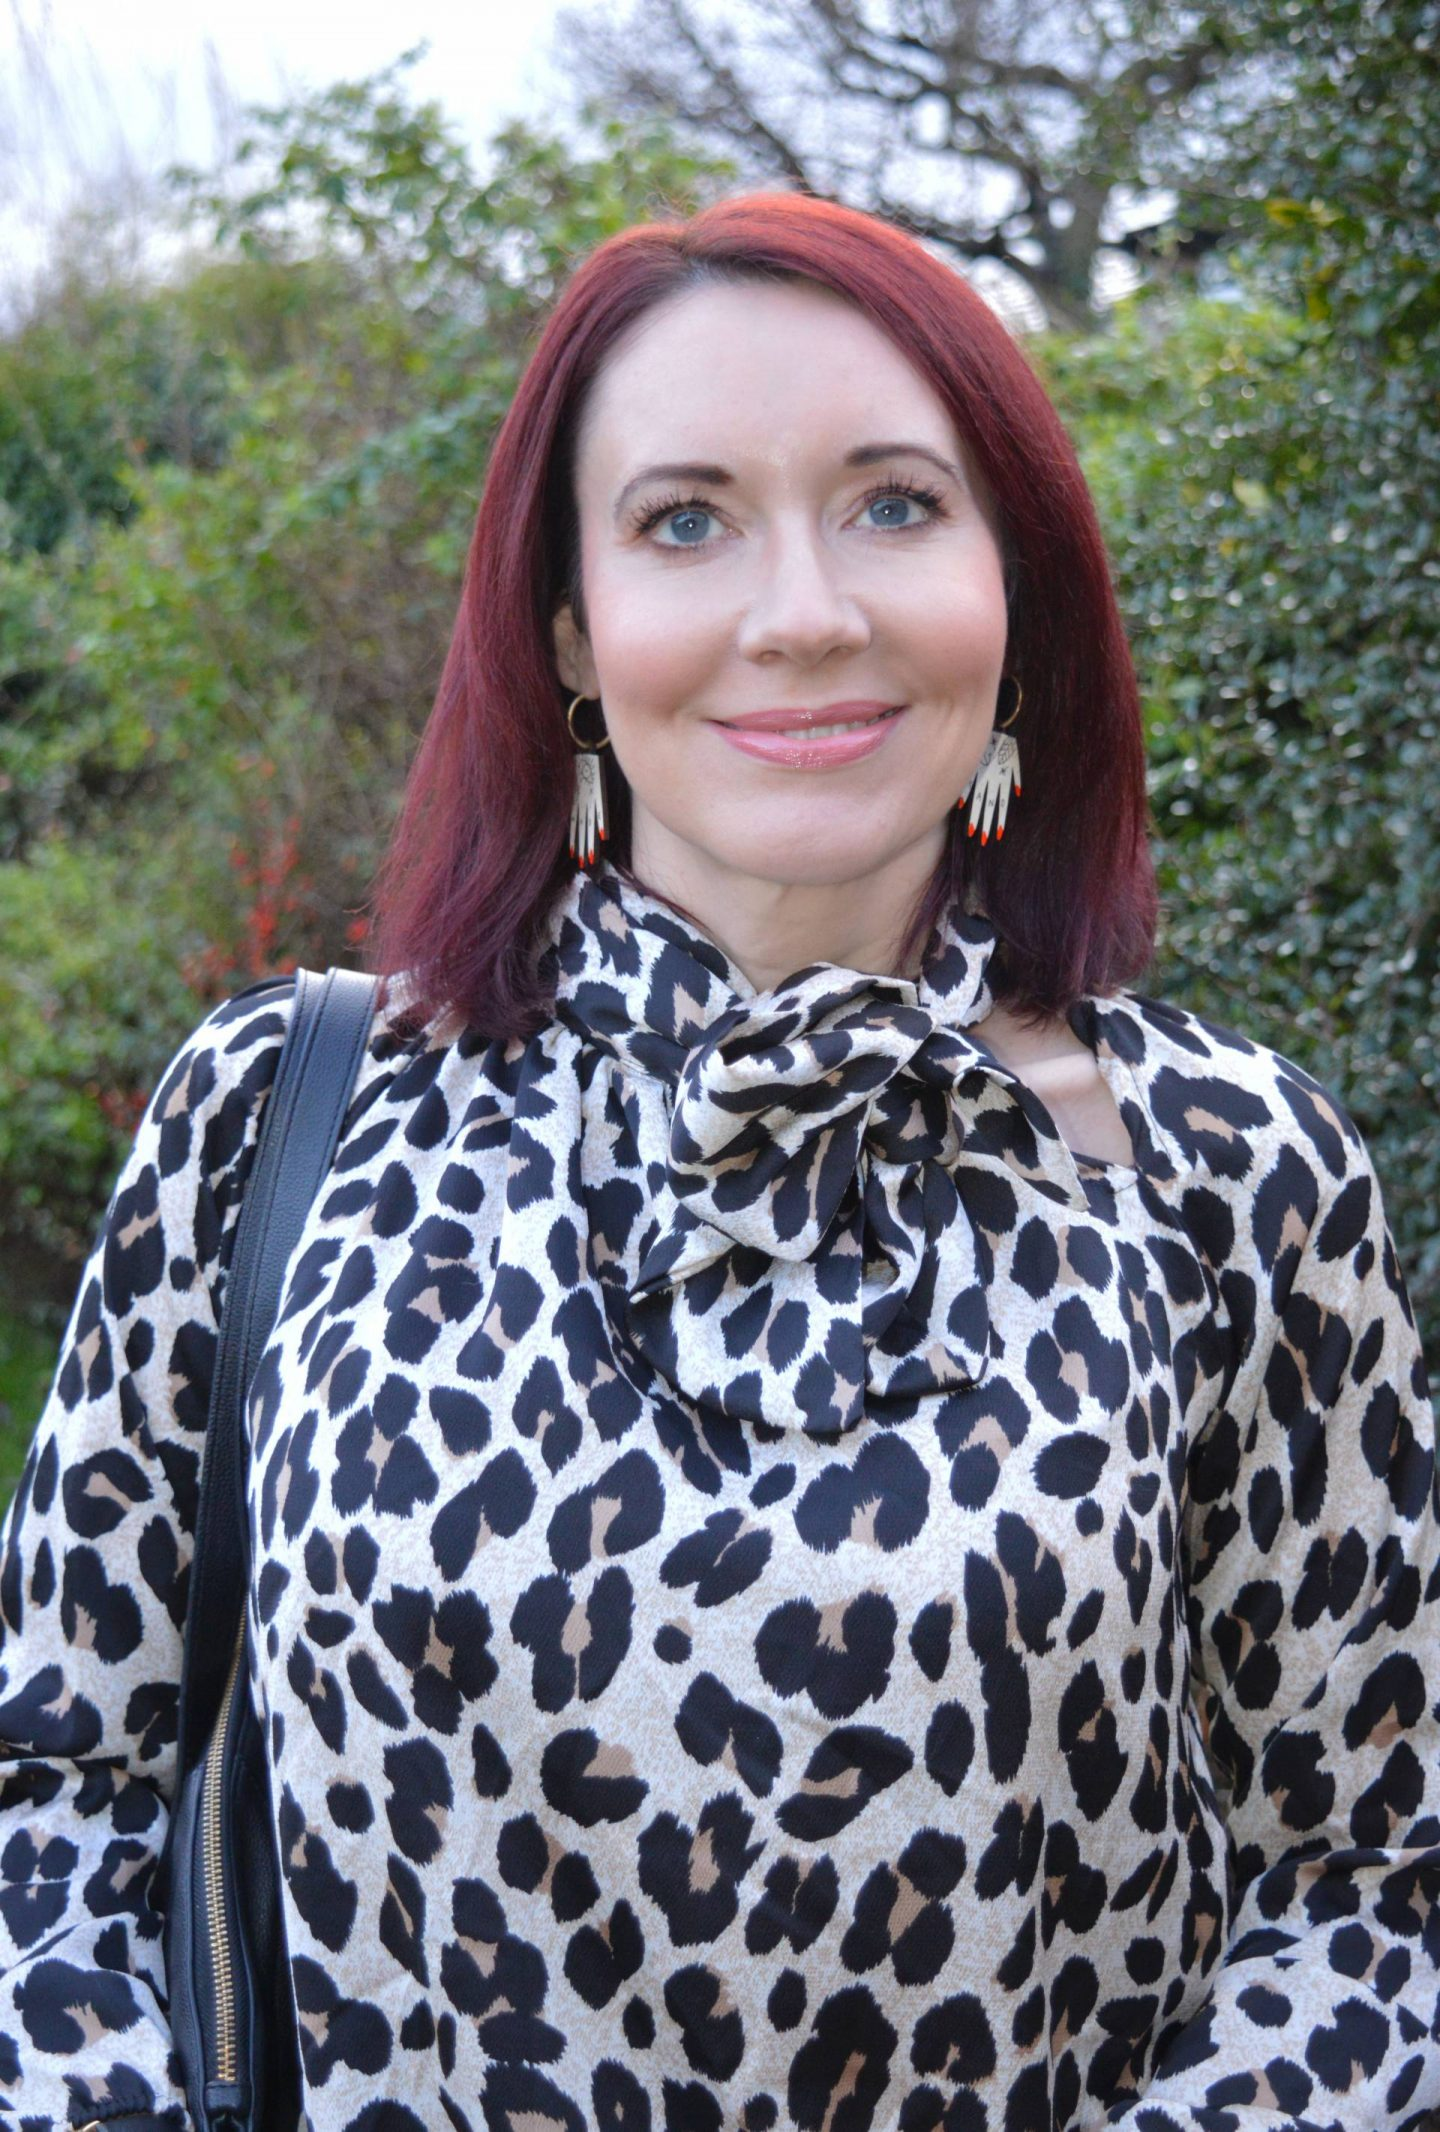 SilkFred leopard print blouse, Materia Rica handmade earrings